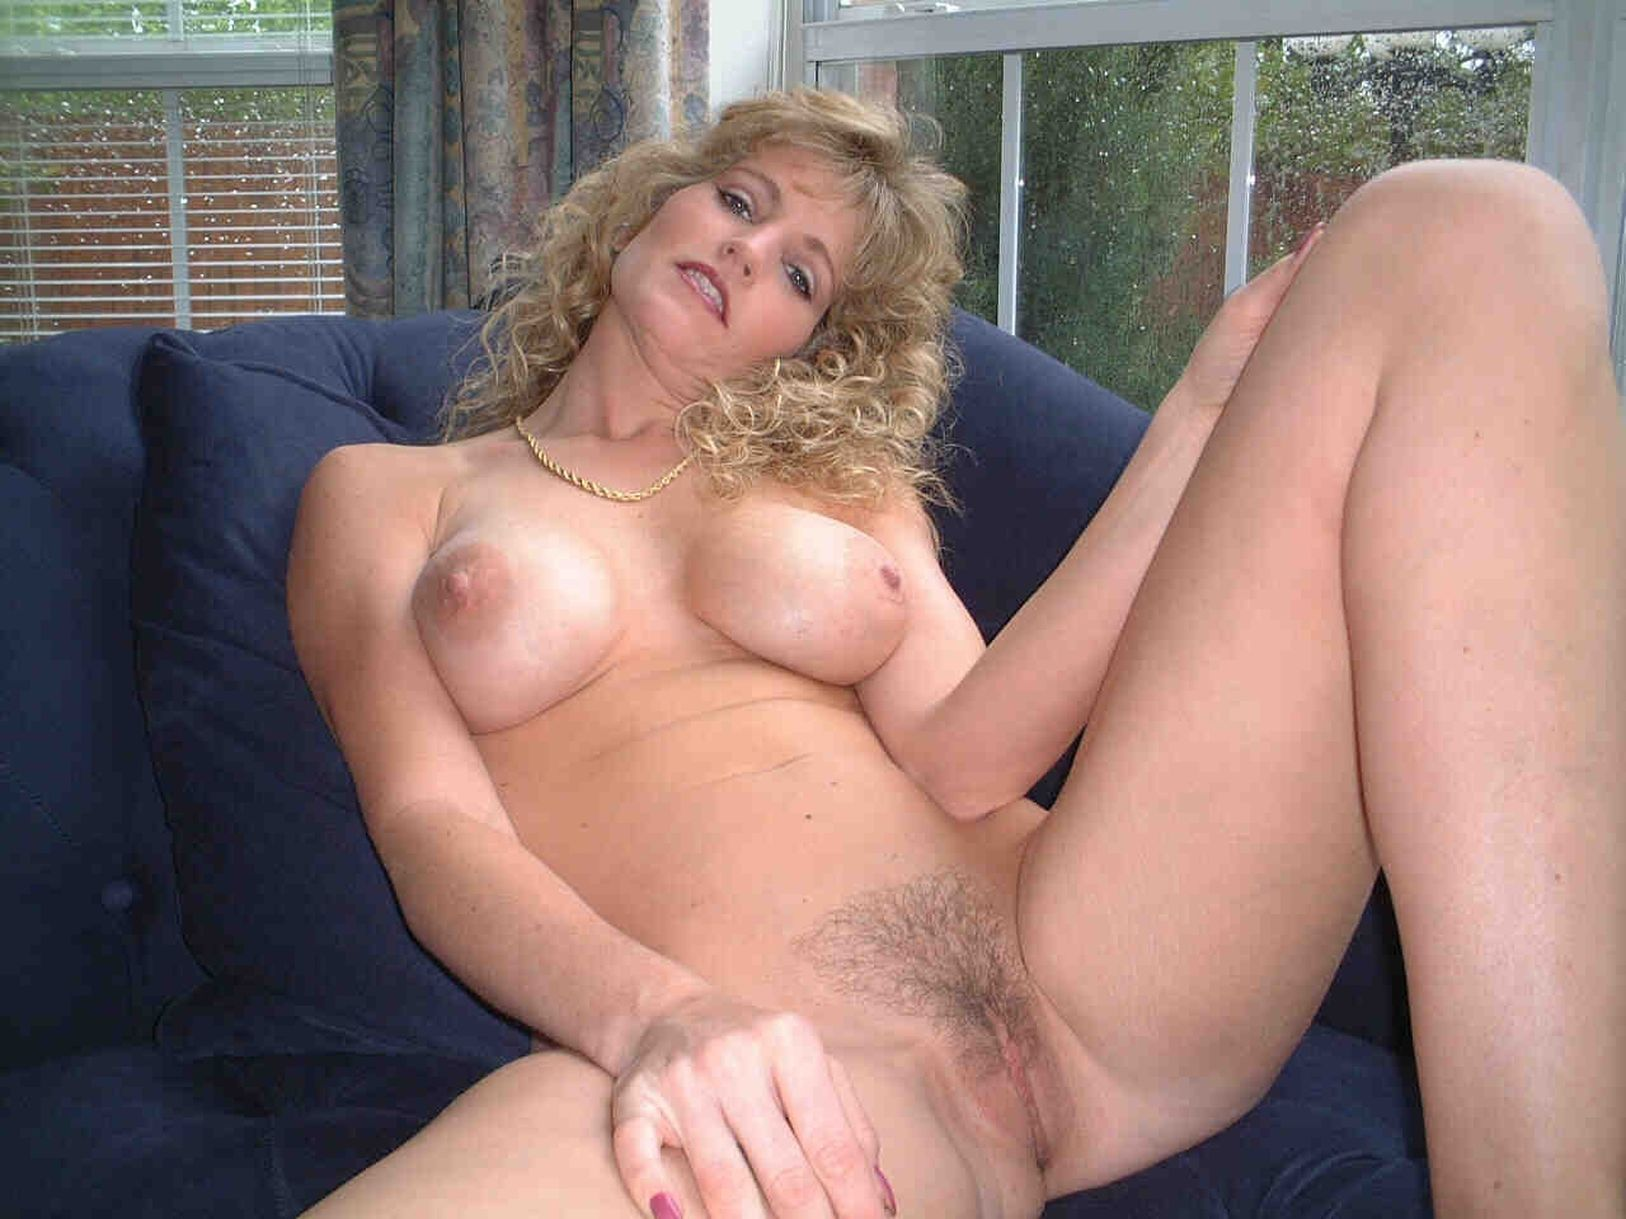 Busty Milf Porn Gallery free milf nude thumbs - porn galleries. comments: 3